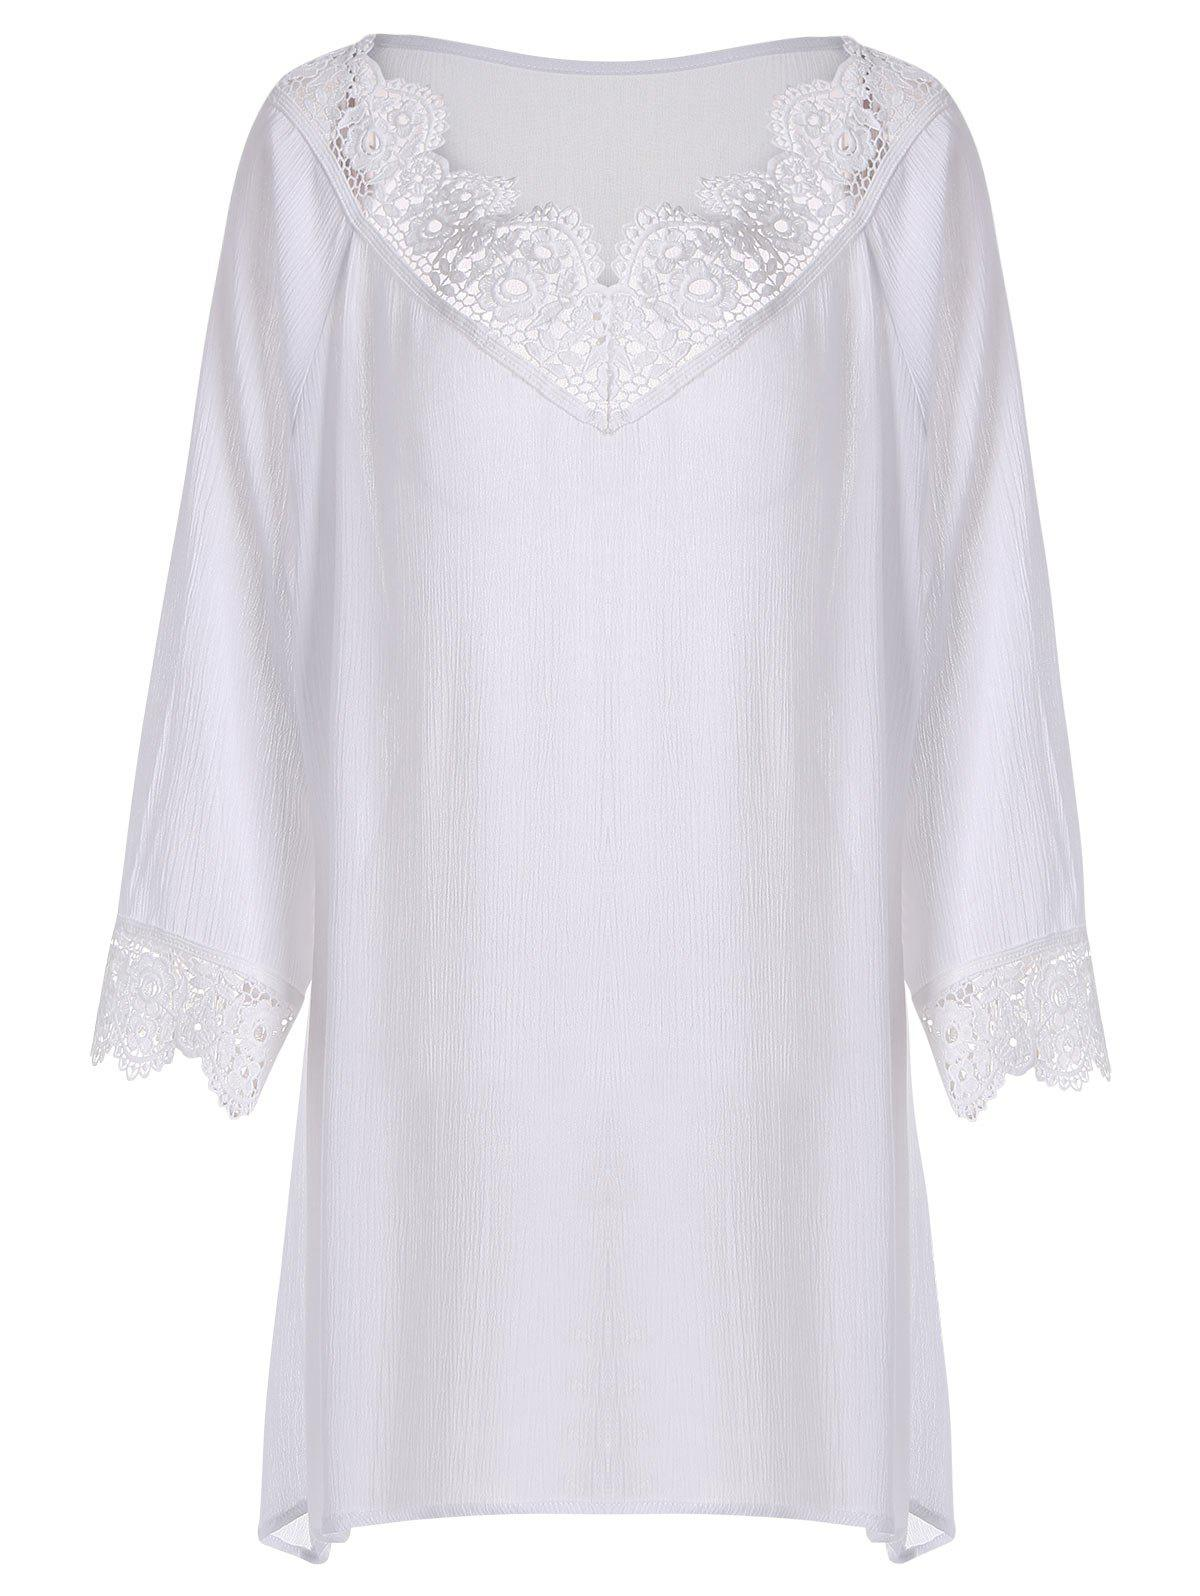 Plus Size Crinkle Lace Crochet Trim Peasant Blouse насос sks diago white 10504 10504sks